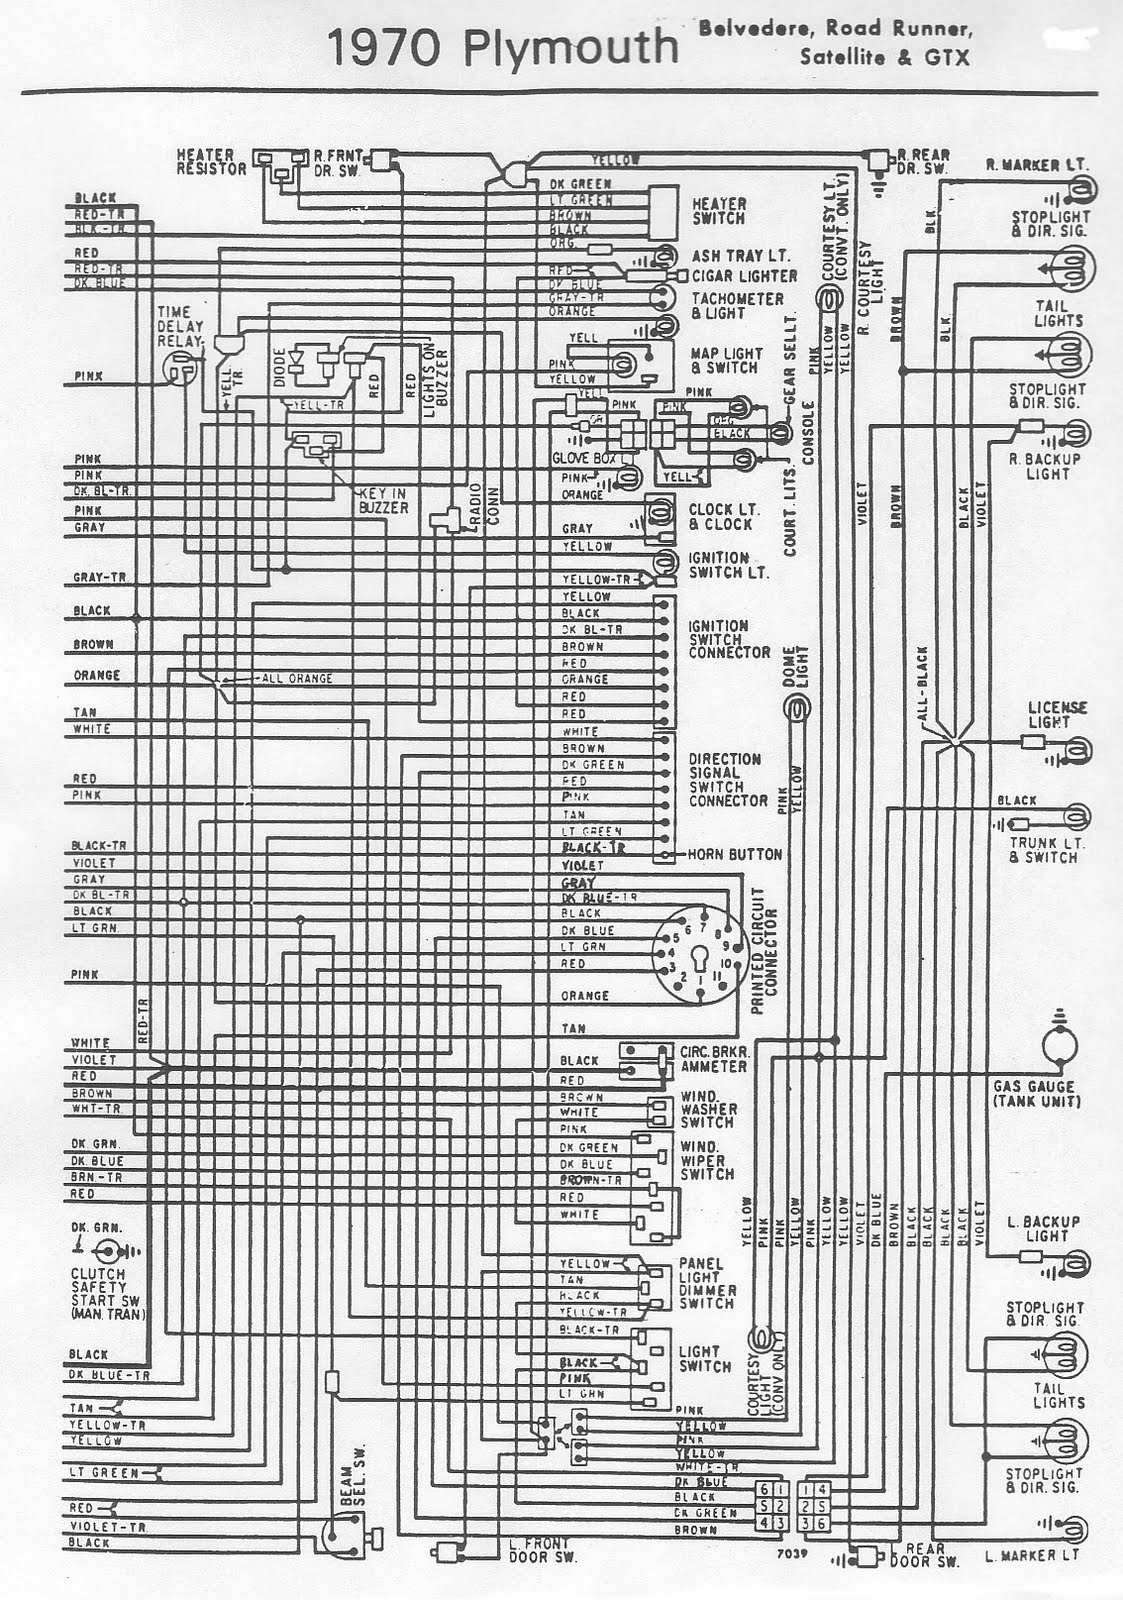 auto wiring diagram 1970 plymouth belvedere gtx road runner 1970 plymouth belvedere gtx road runner and satellite rear side wiring diagram